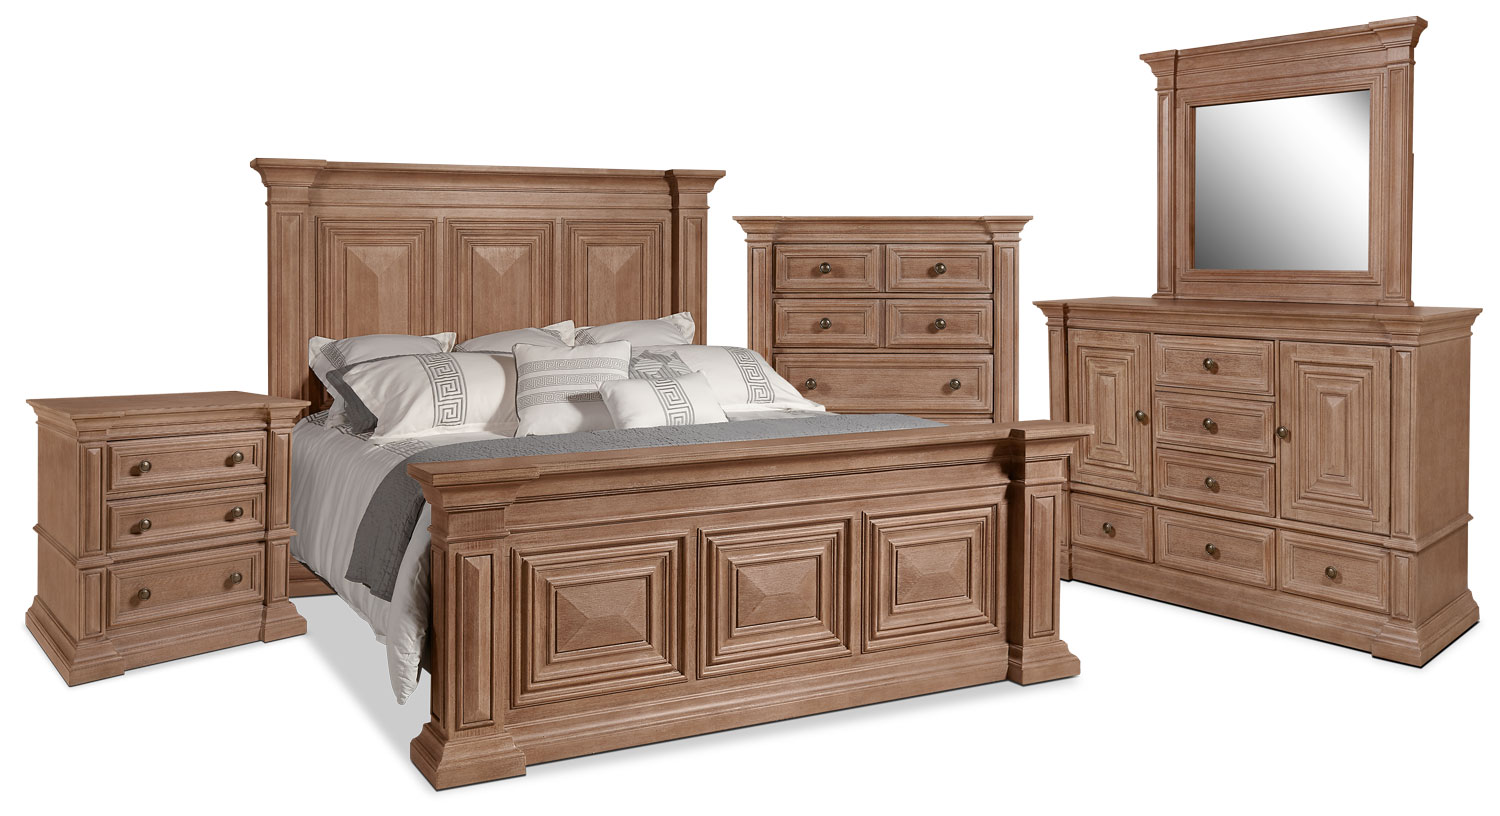 Sedona 7-Piece Queen Bedroom Package